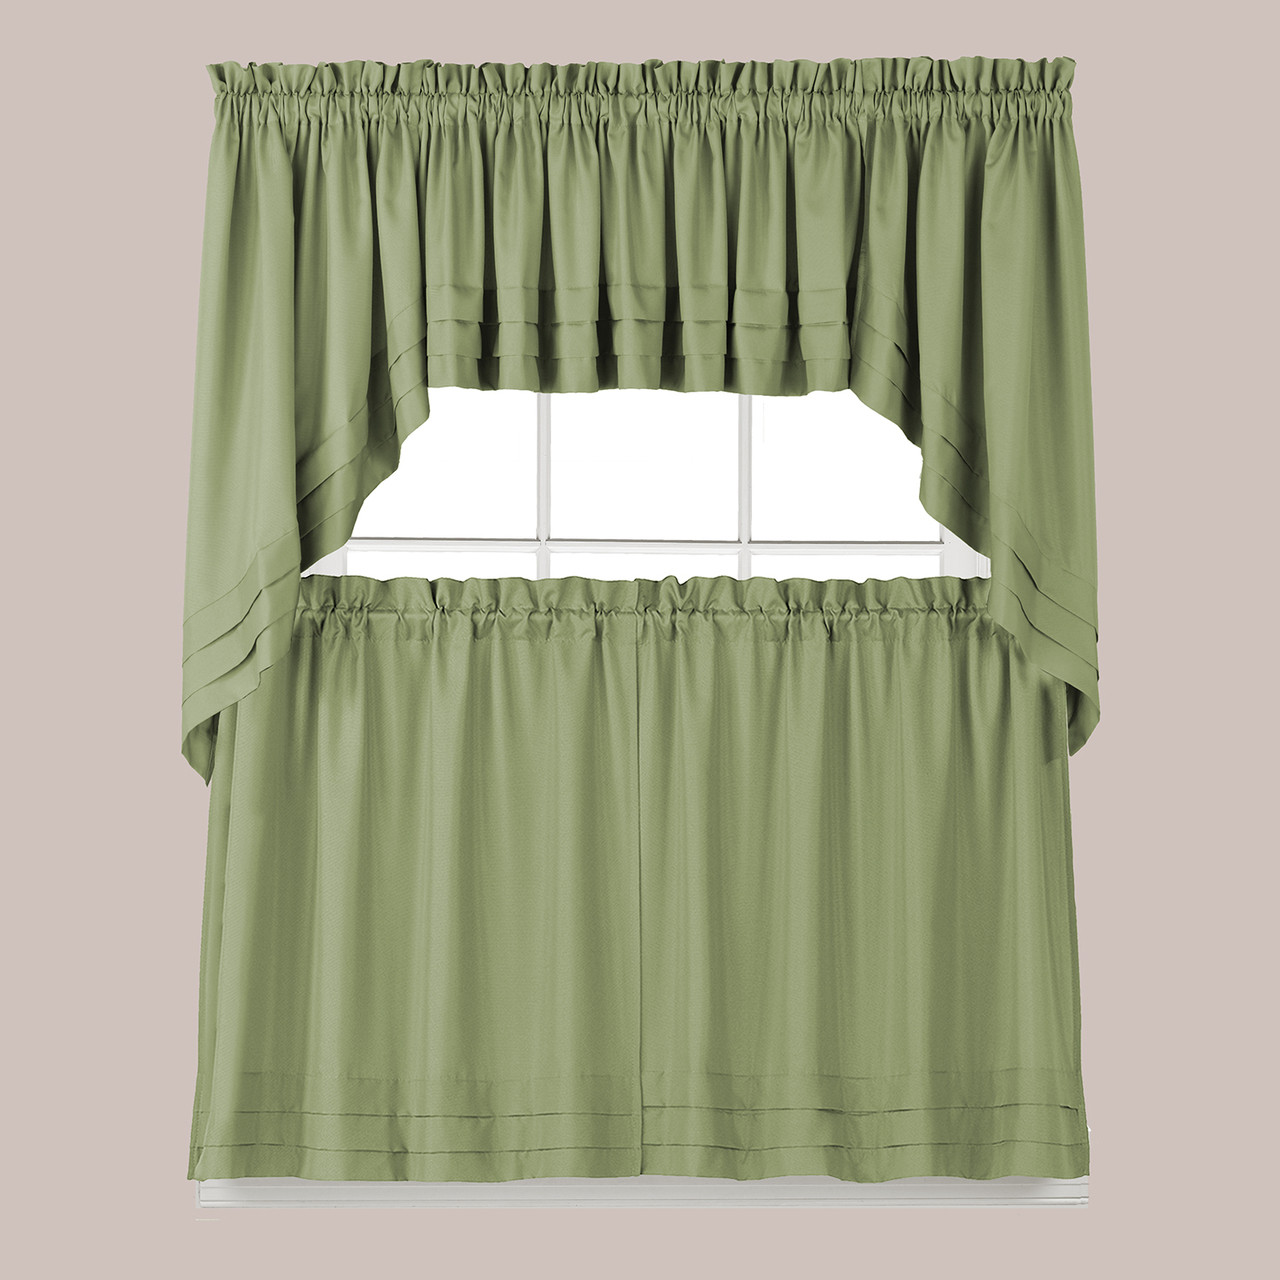 Holden Kitchen Curtain - Sage Green